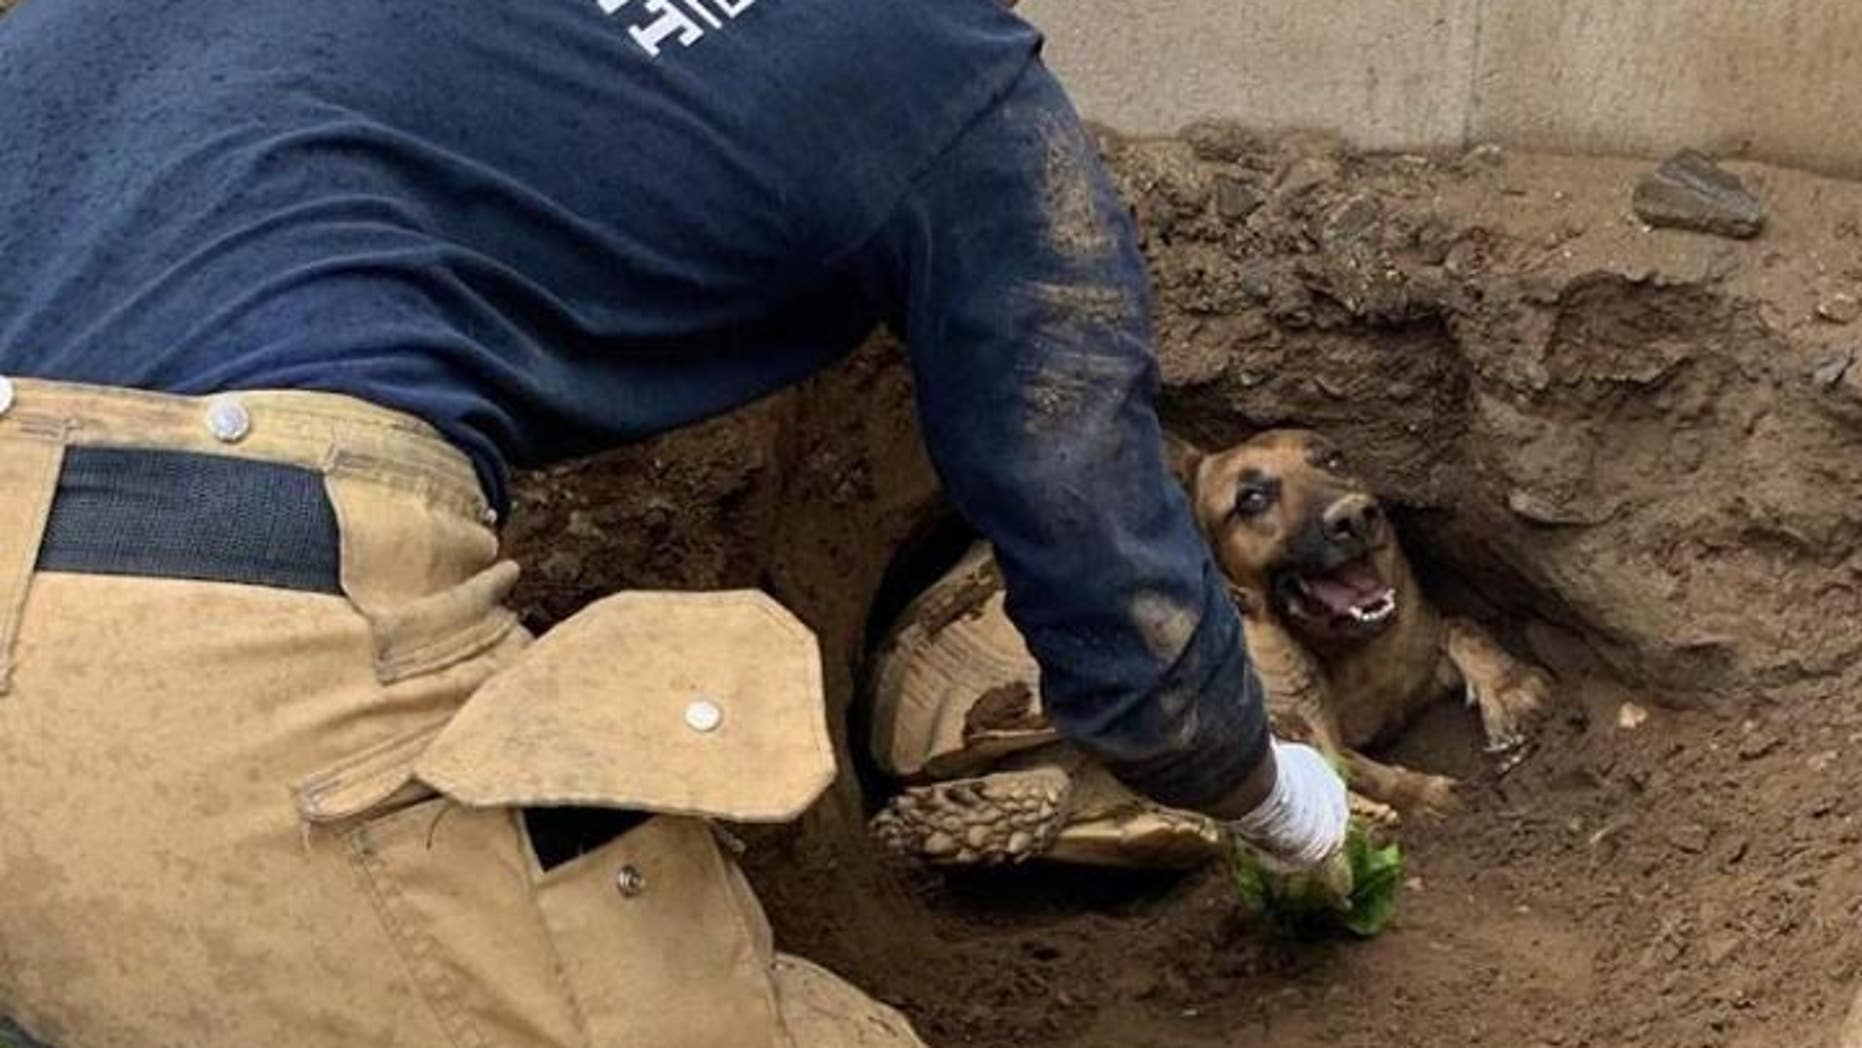 California firefighters on Wednesday came to the rescue of a 70-pound tortoise named Godzilla and a dog named Taylor who got trapped in a tunnel, officials said.